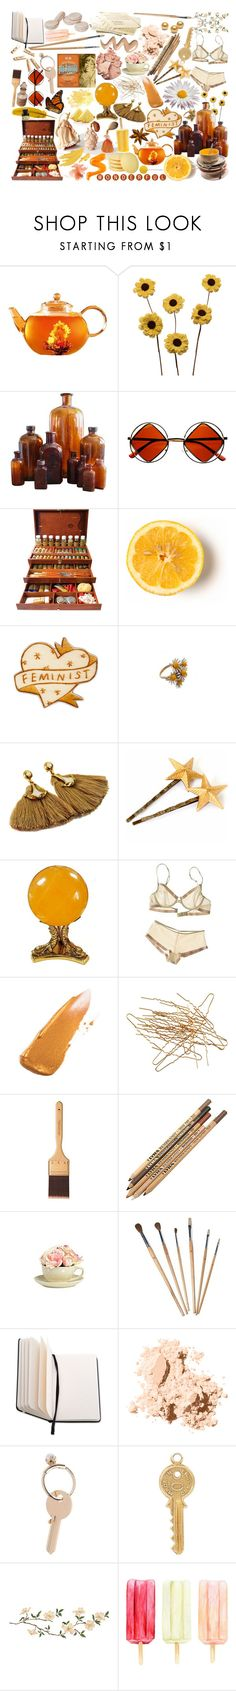 """""""Hot summer evening"""" by hecate-de-lagina ❤ liked on Polyvore featuring interior, interiors, interior design, home, home decor, interior decorating, Kusmi Tea, ZiaBella, Retrò and Mother"""